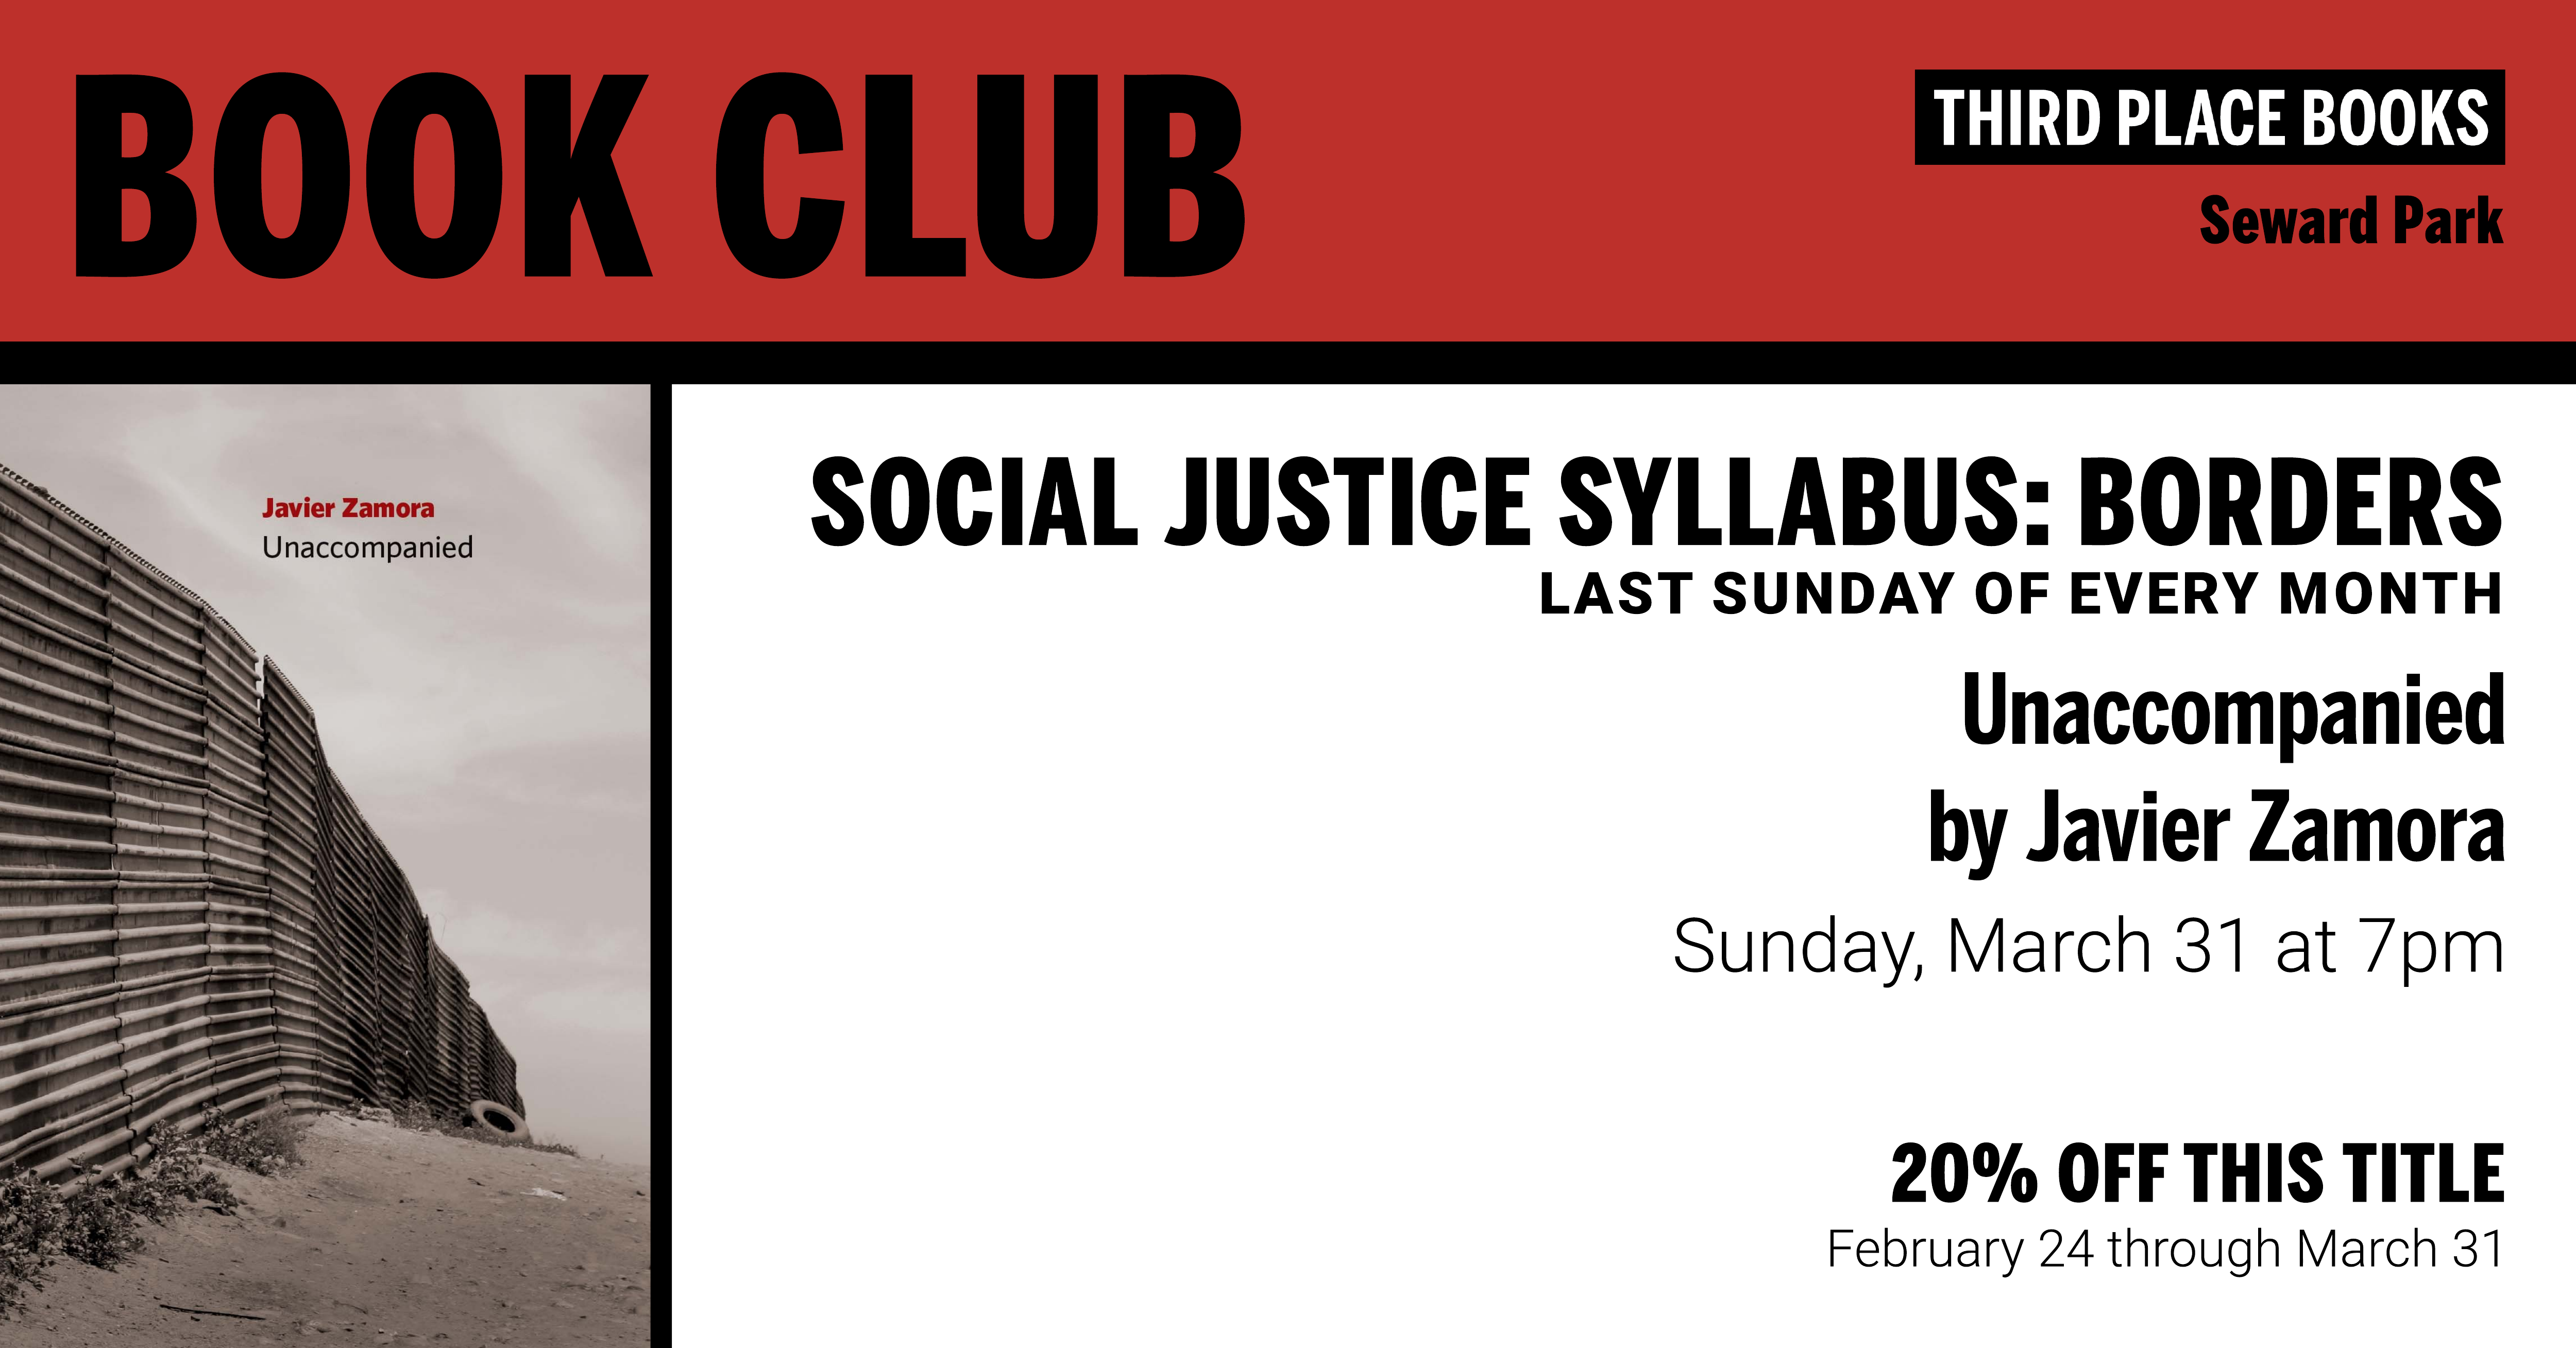 Social Justice Syllabus: Borders discussing Unaccompanied by Javier Zamora on Sunday, March 31 at 7pm